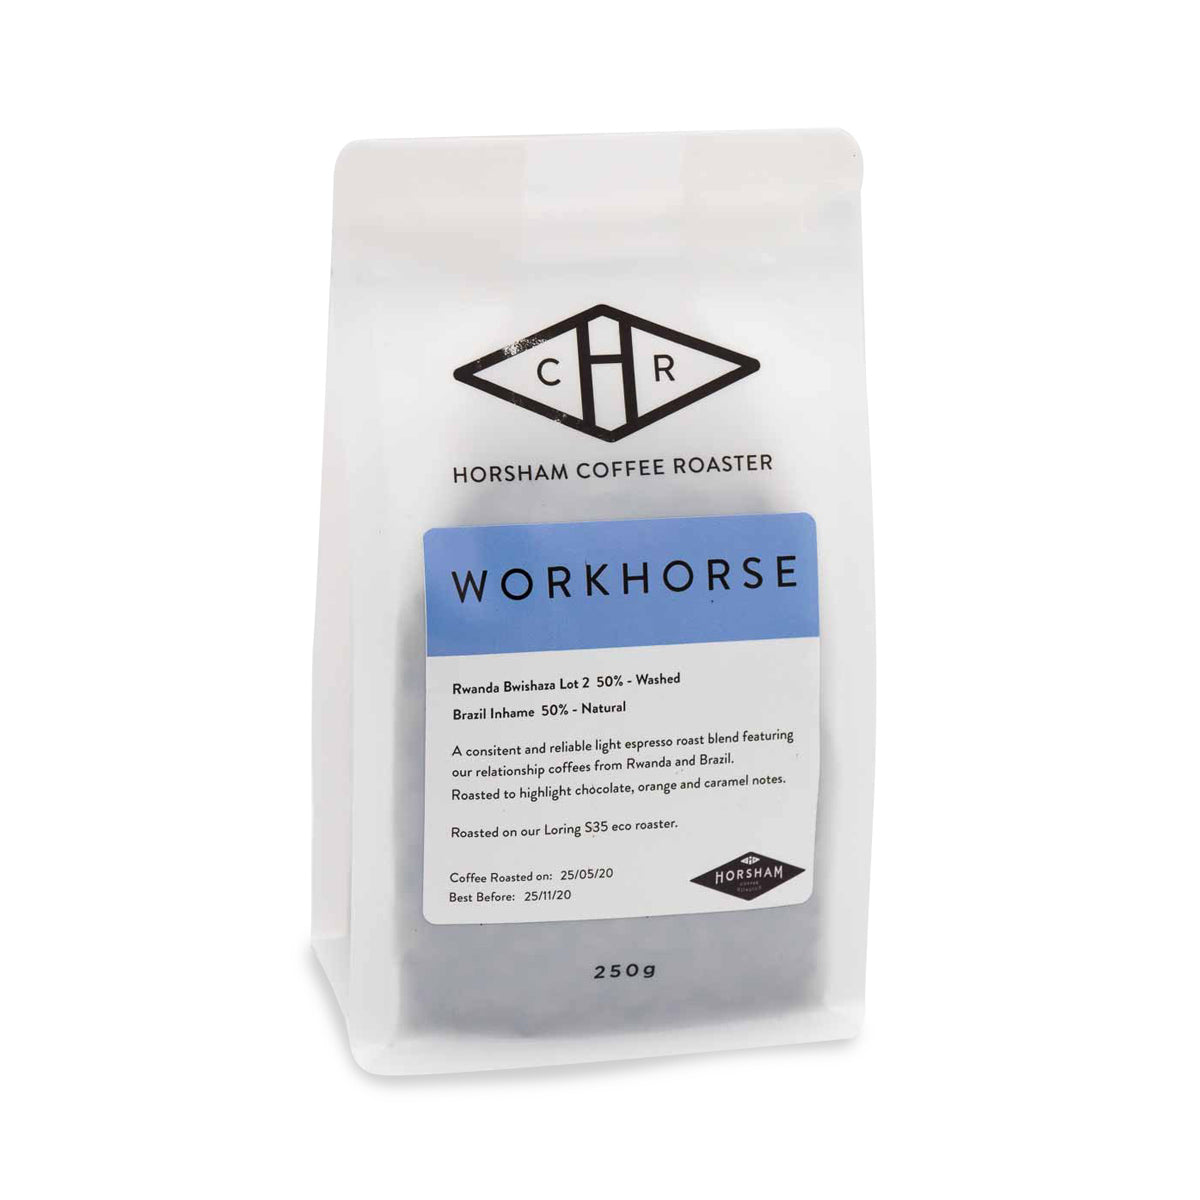 Horsham Coffee Roaster - Workhorse Espresso Blend Coffee Beans - 250g